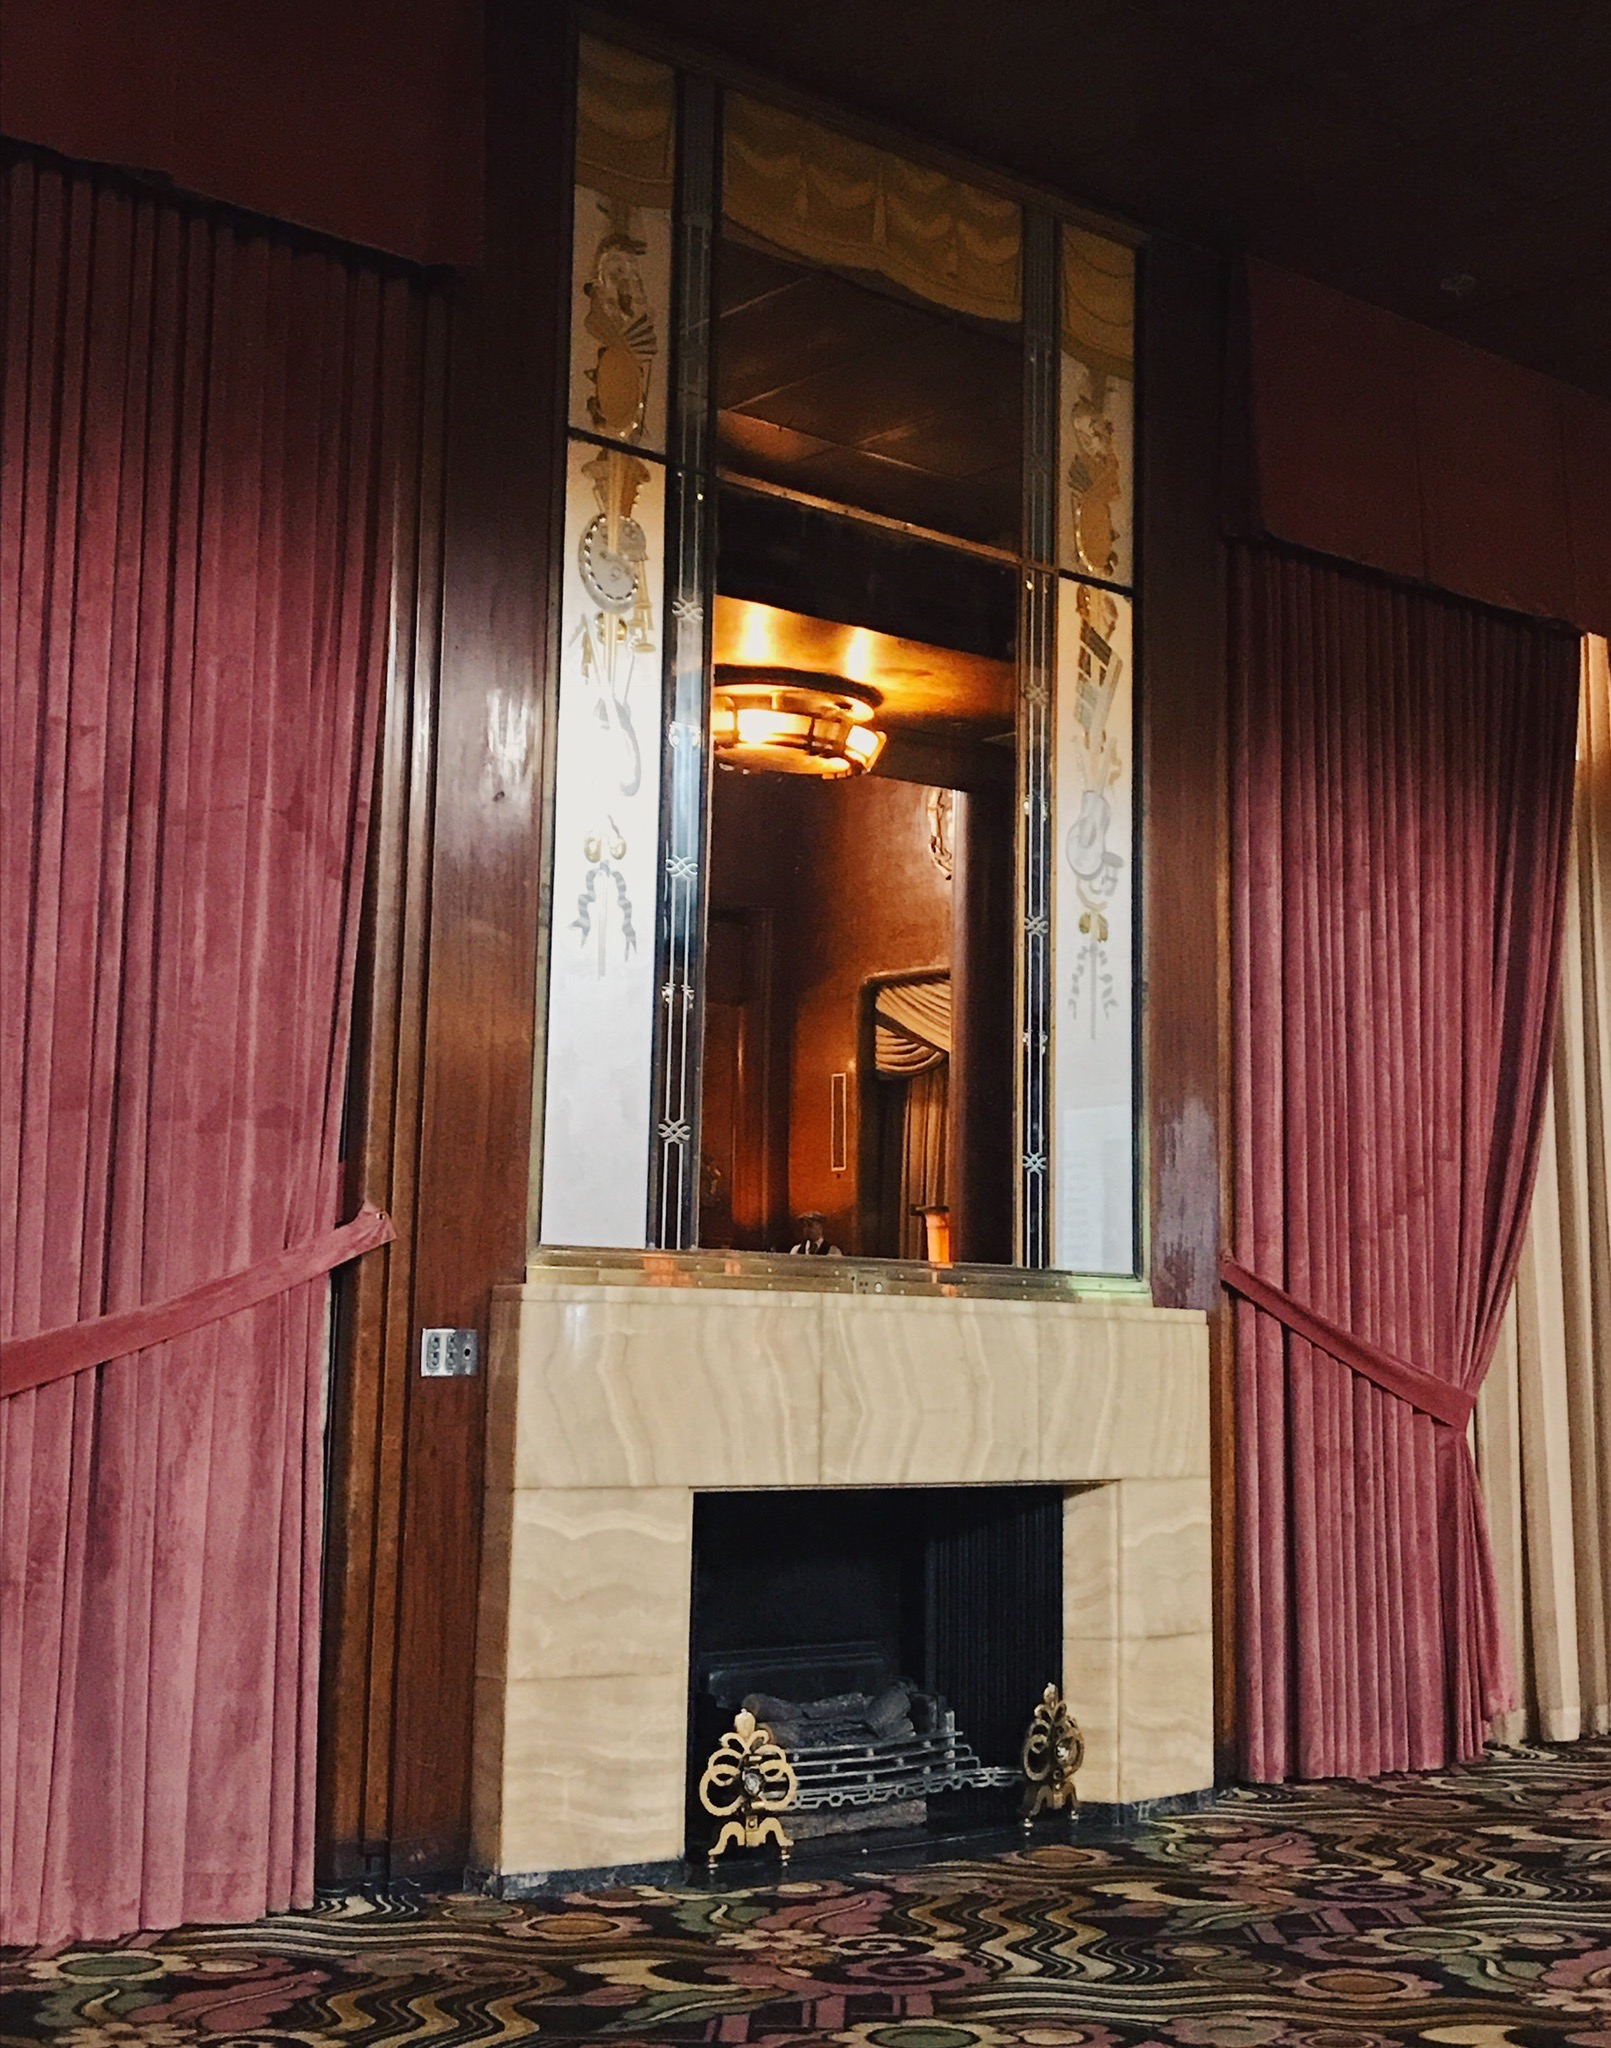 Art deco fireplace in the Queen Mary First Class Lounge  Photo via  Finding Lost Angeles  (2017)